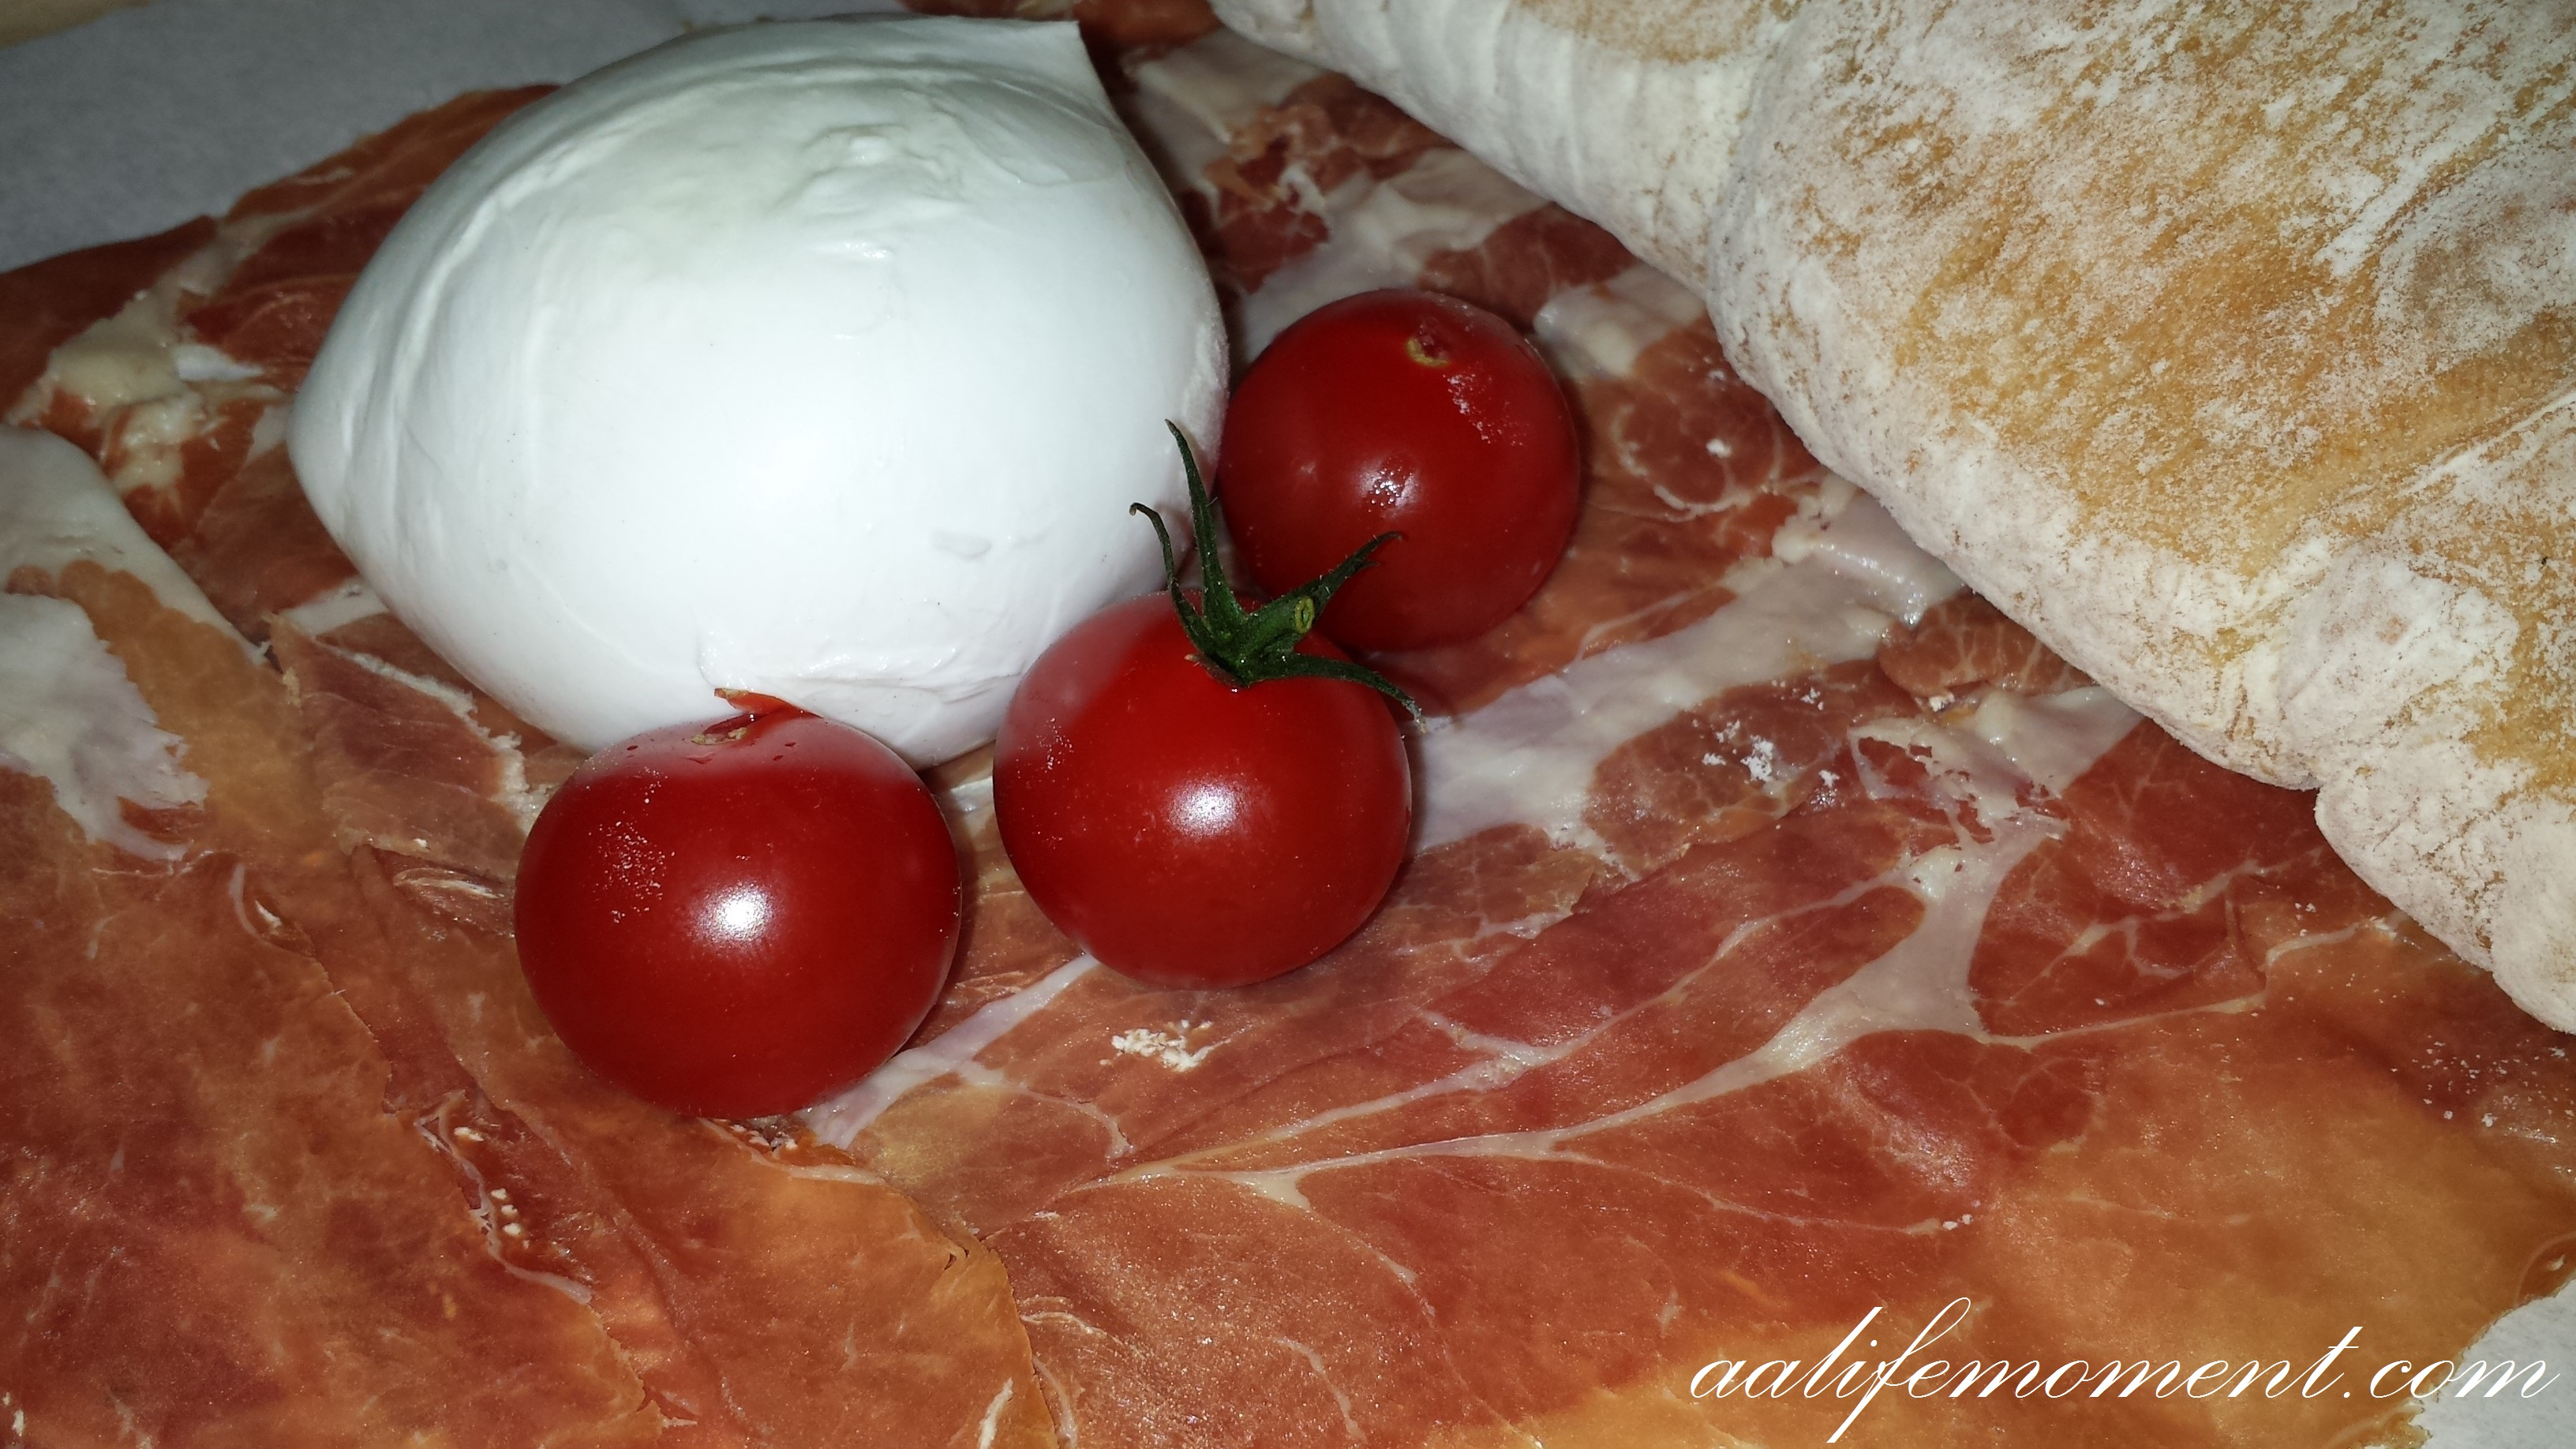 Cherry tomaotes,Mozzarella di Bufala, Parma Ham and Organic bread